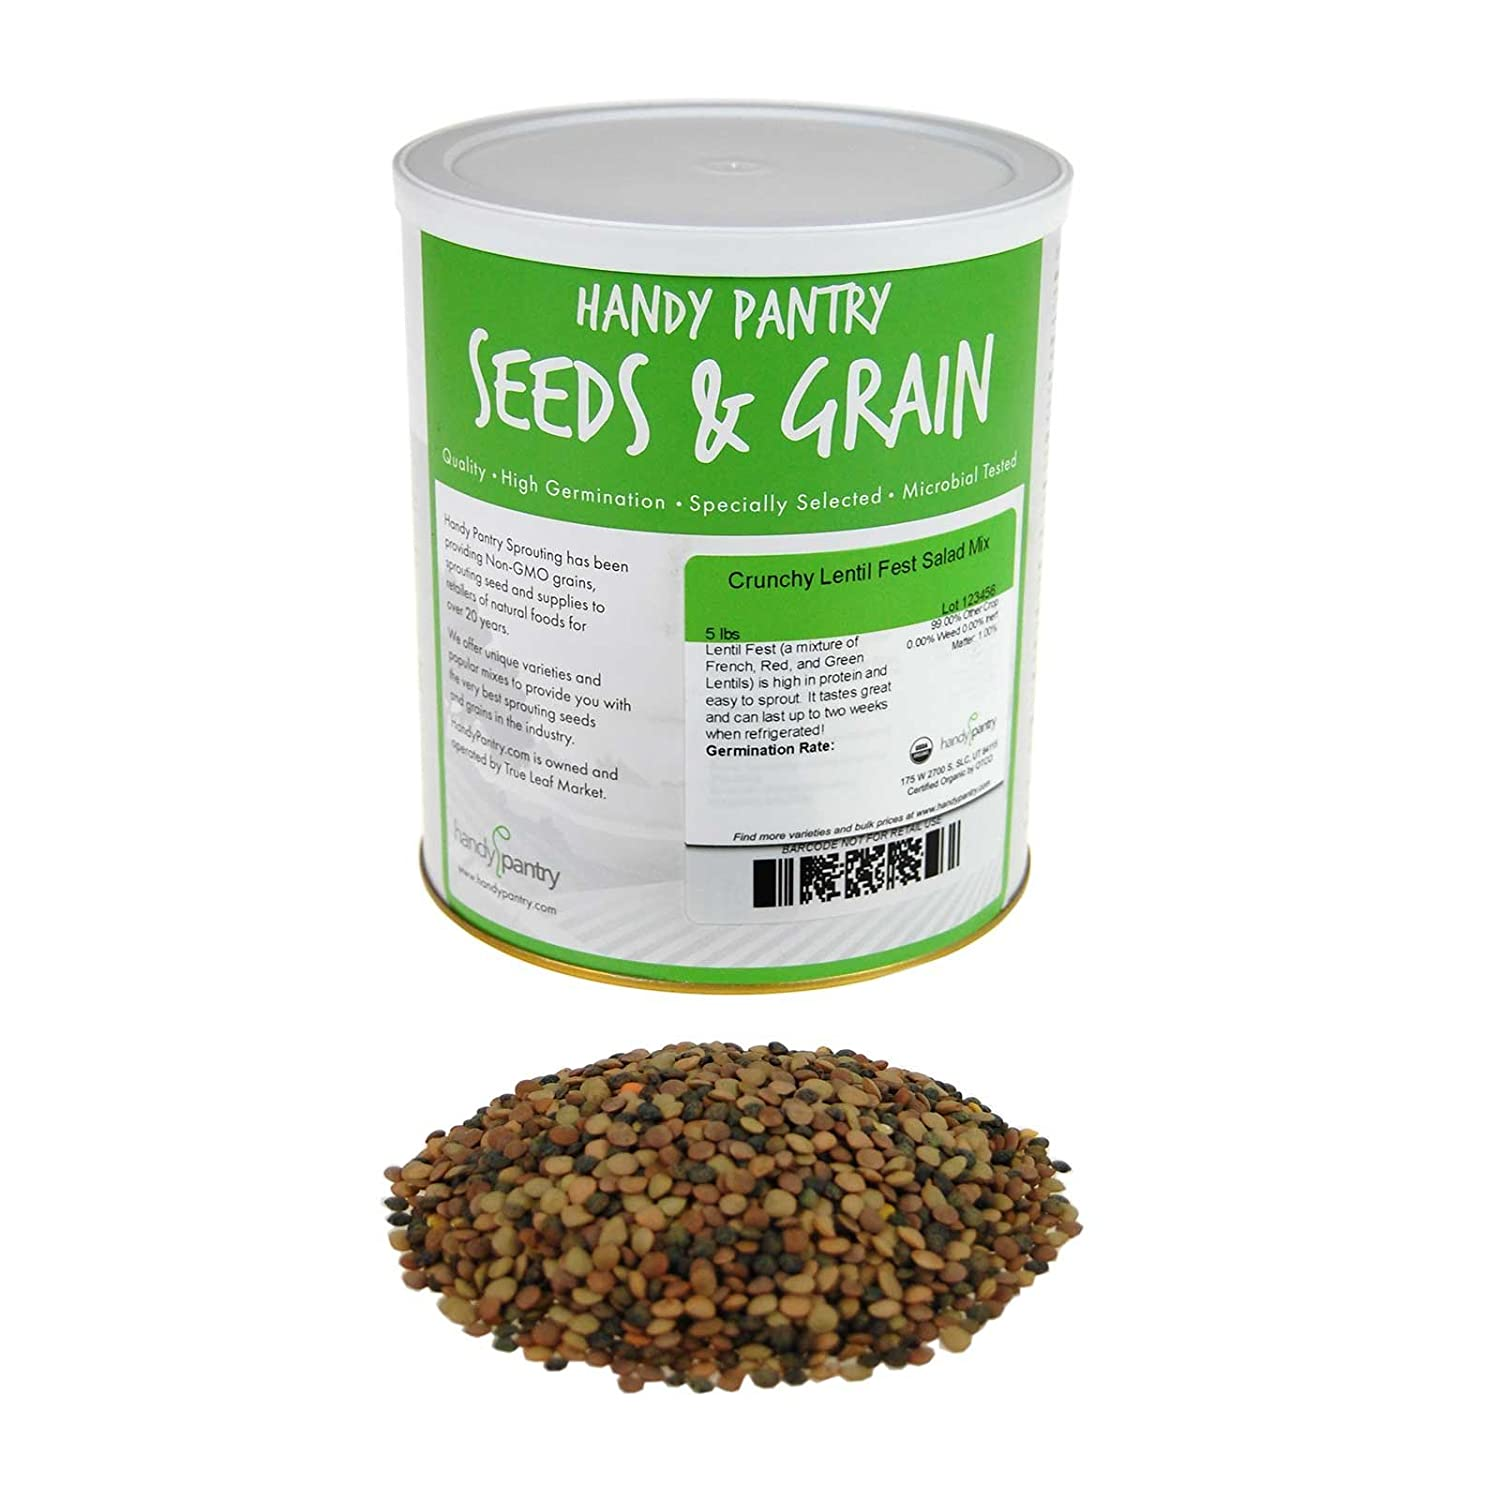 Crunchy Lentil Fest Sprouting Seed Mix- 5 Lbs- Organic- Green, Red & French Lentils- Edible Seeds, Salad, Soup, Sprouts & Food Storage